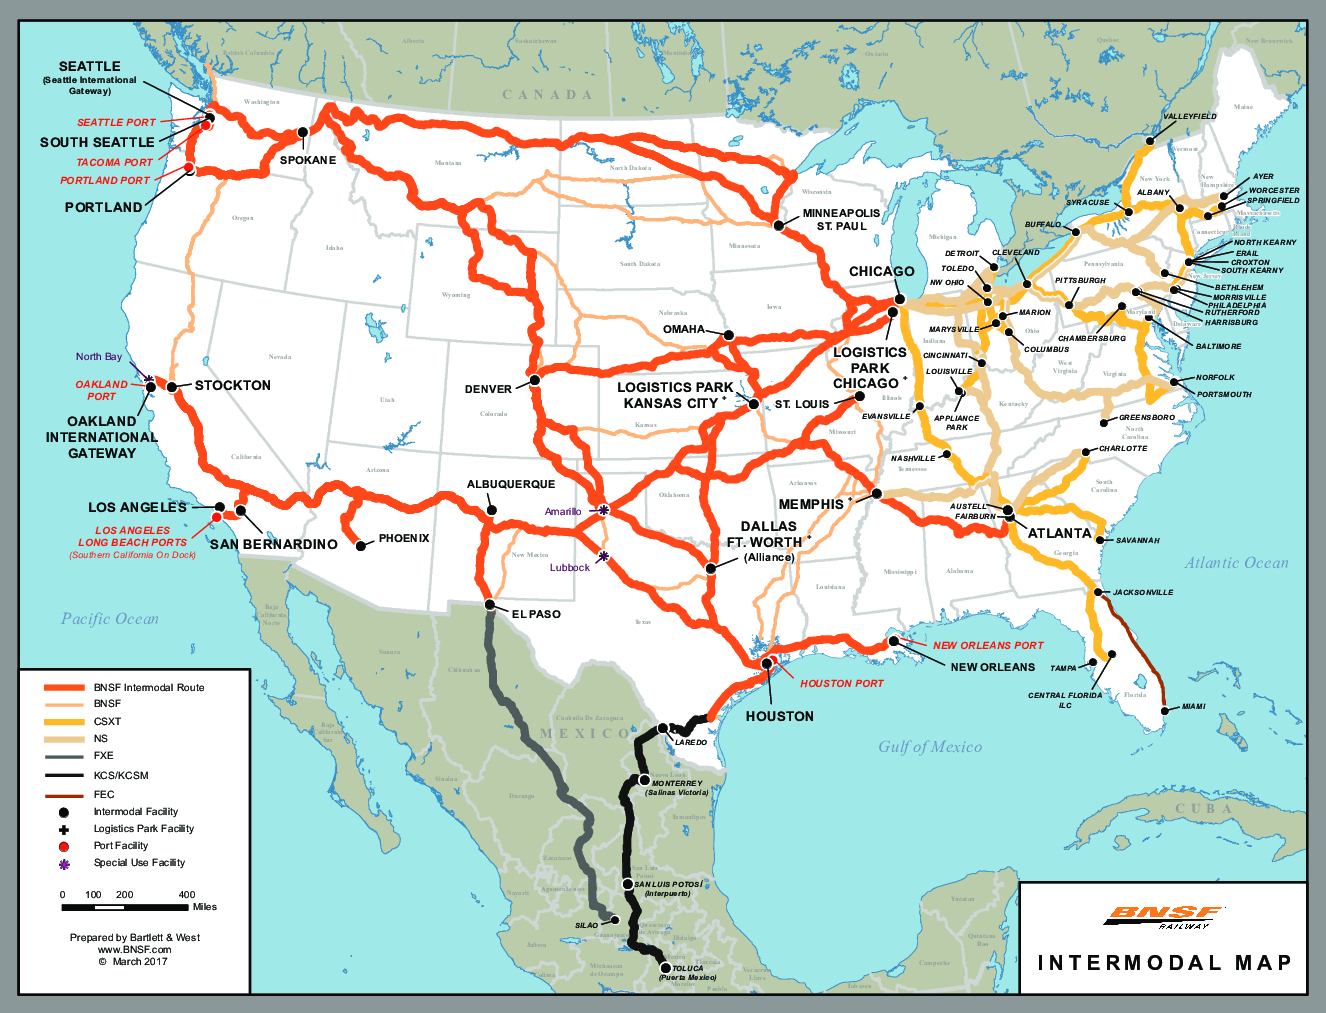 Rail Network Maps | Bnsf - Florida Railroad Map